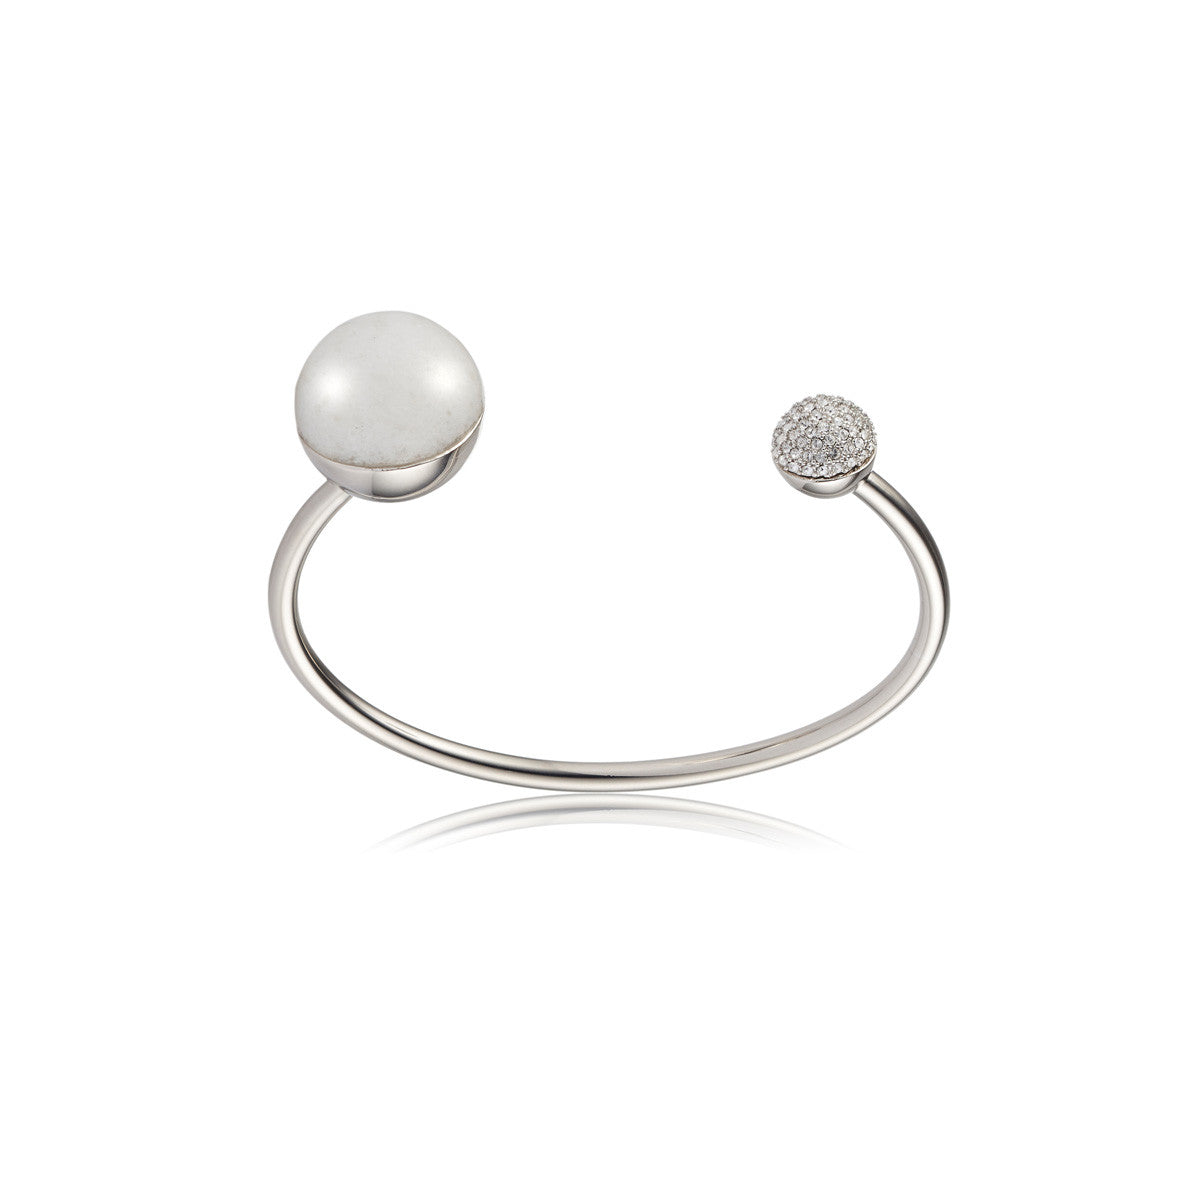 Solid brass, rhodium plated Crystal Orbis bangle topped with white agate and Swarovski® crystal pavè detailing – front